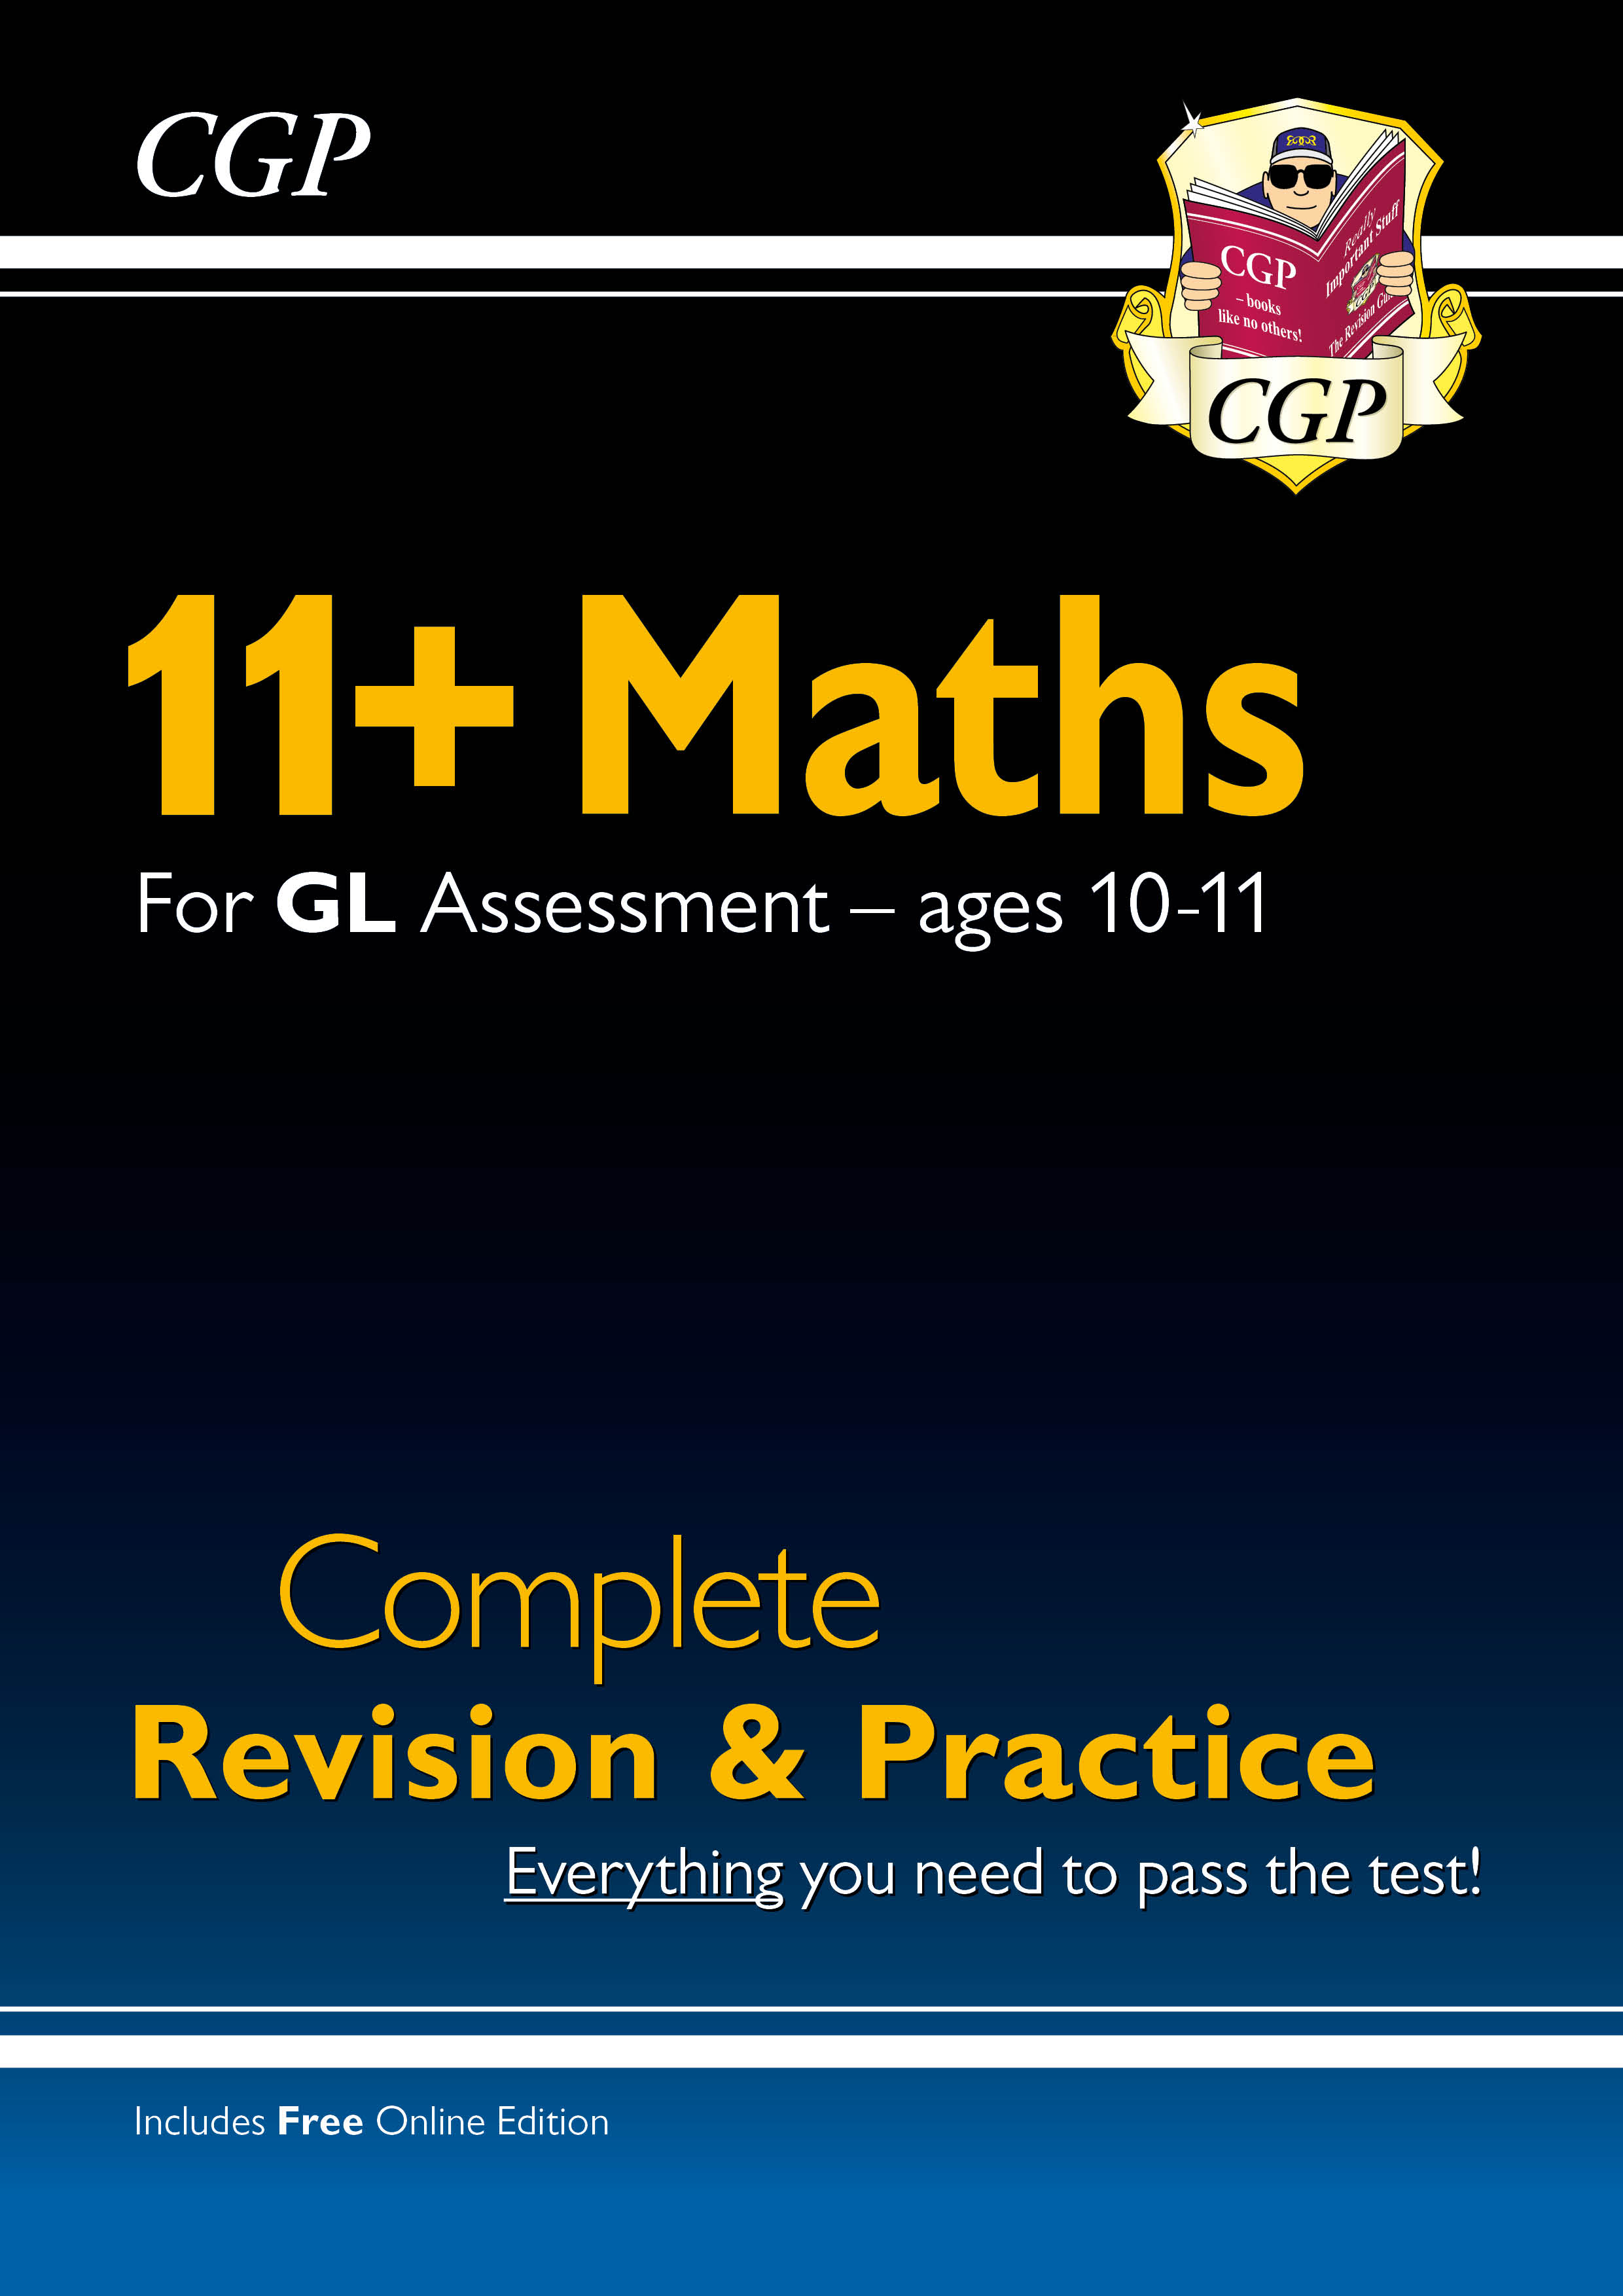 MHSE1 - New 11+ GL Maths Complete Revision and Practice - Ages 10-11 (with Online Edition)